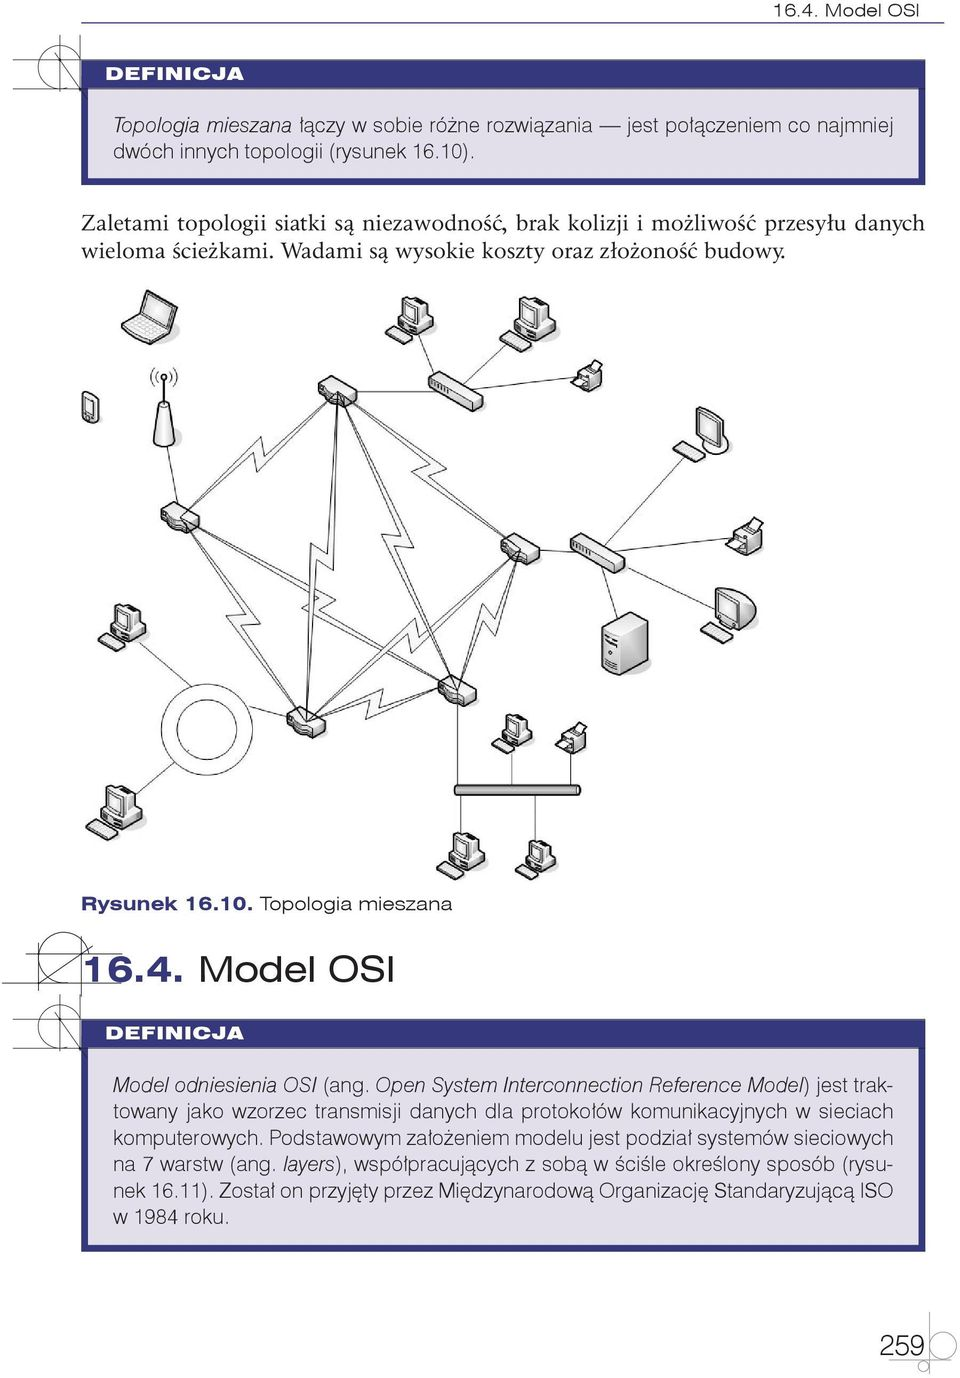 Model OSI Model odniesienia OSI (ang. Open System Interconnection Reference Model) jest traktowany jako wzorzec transmisji danych dla protokołów komunikacyjnych w sieciach komputerowych.